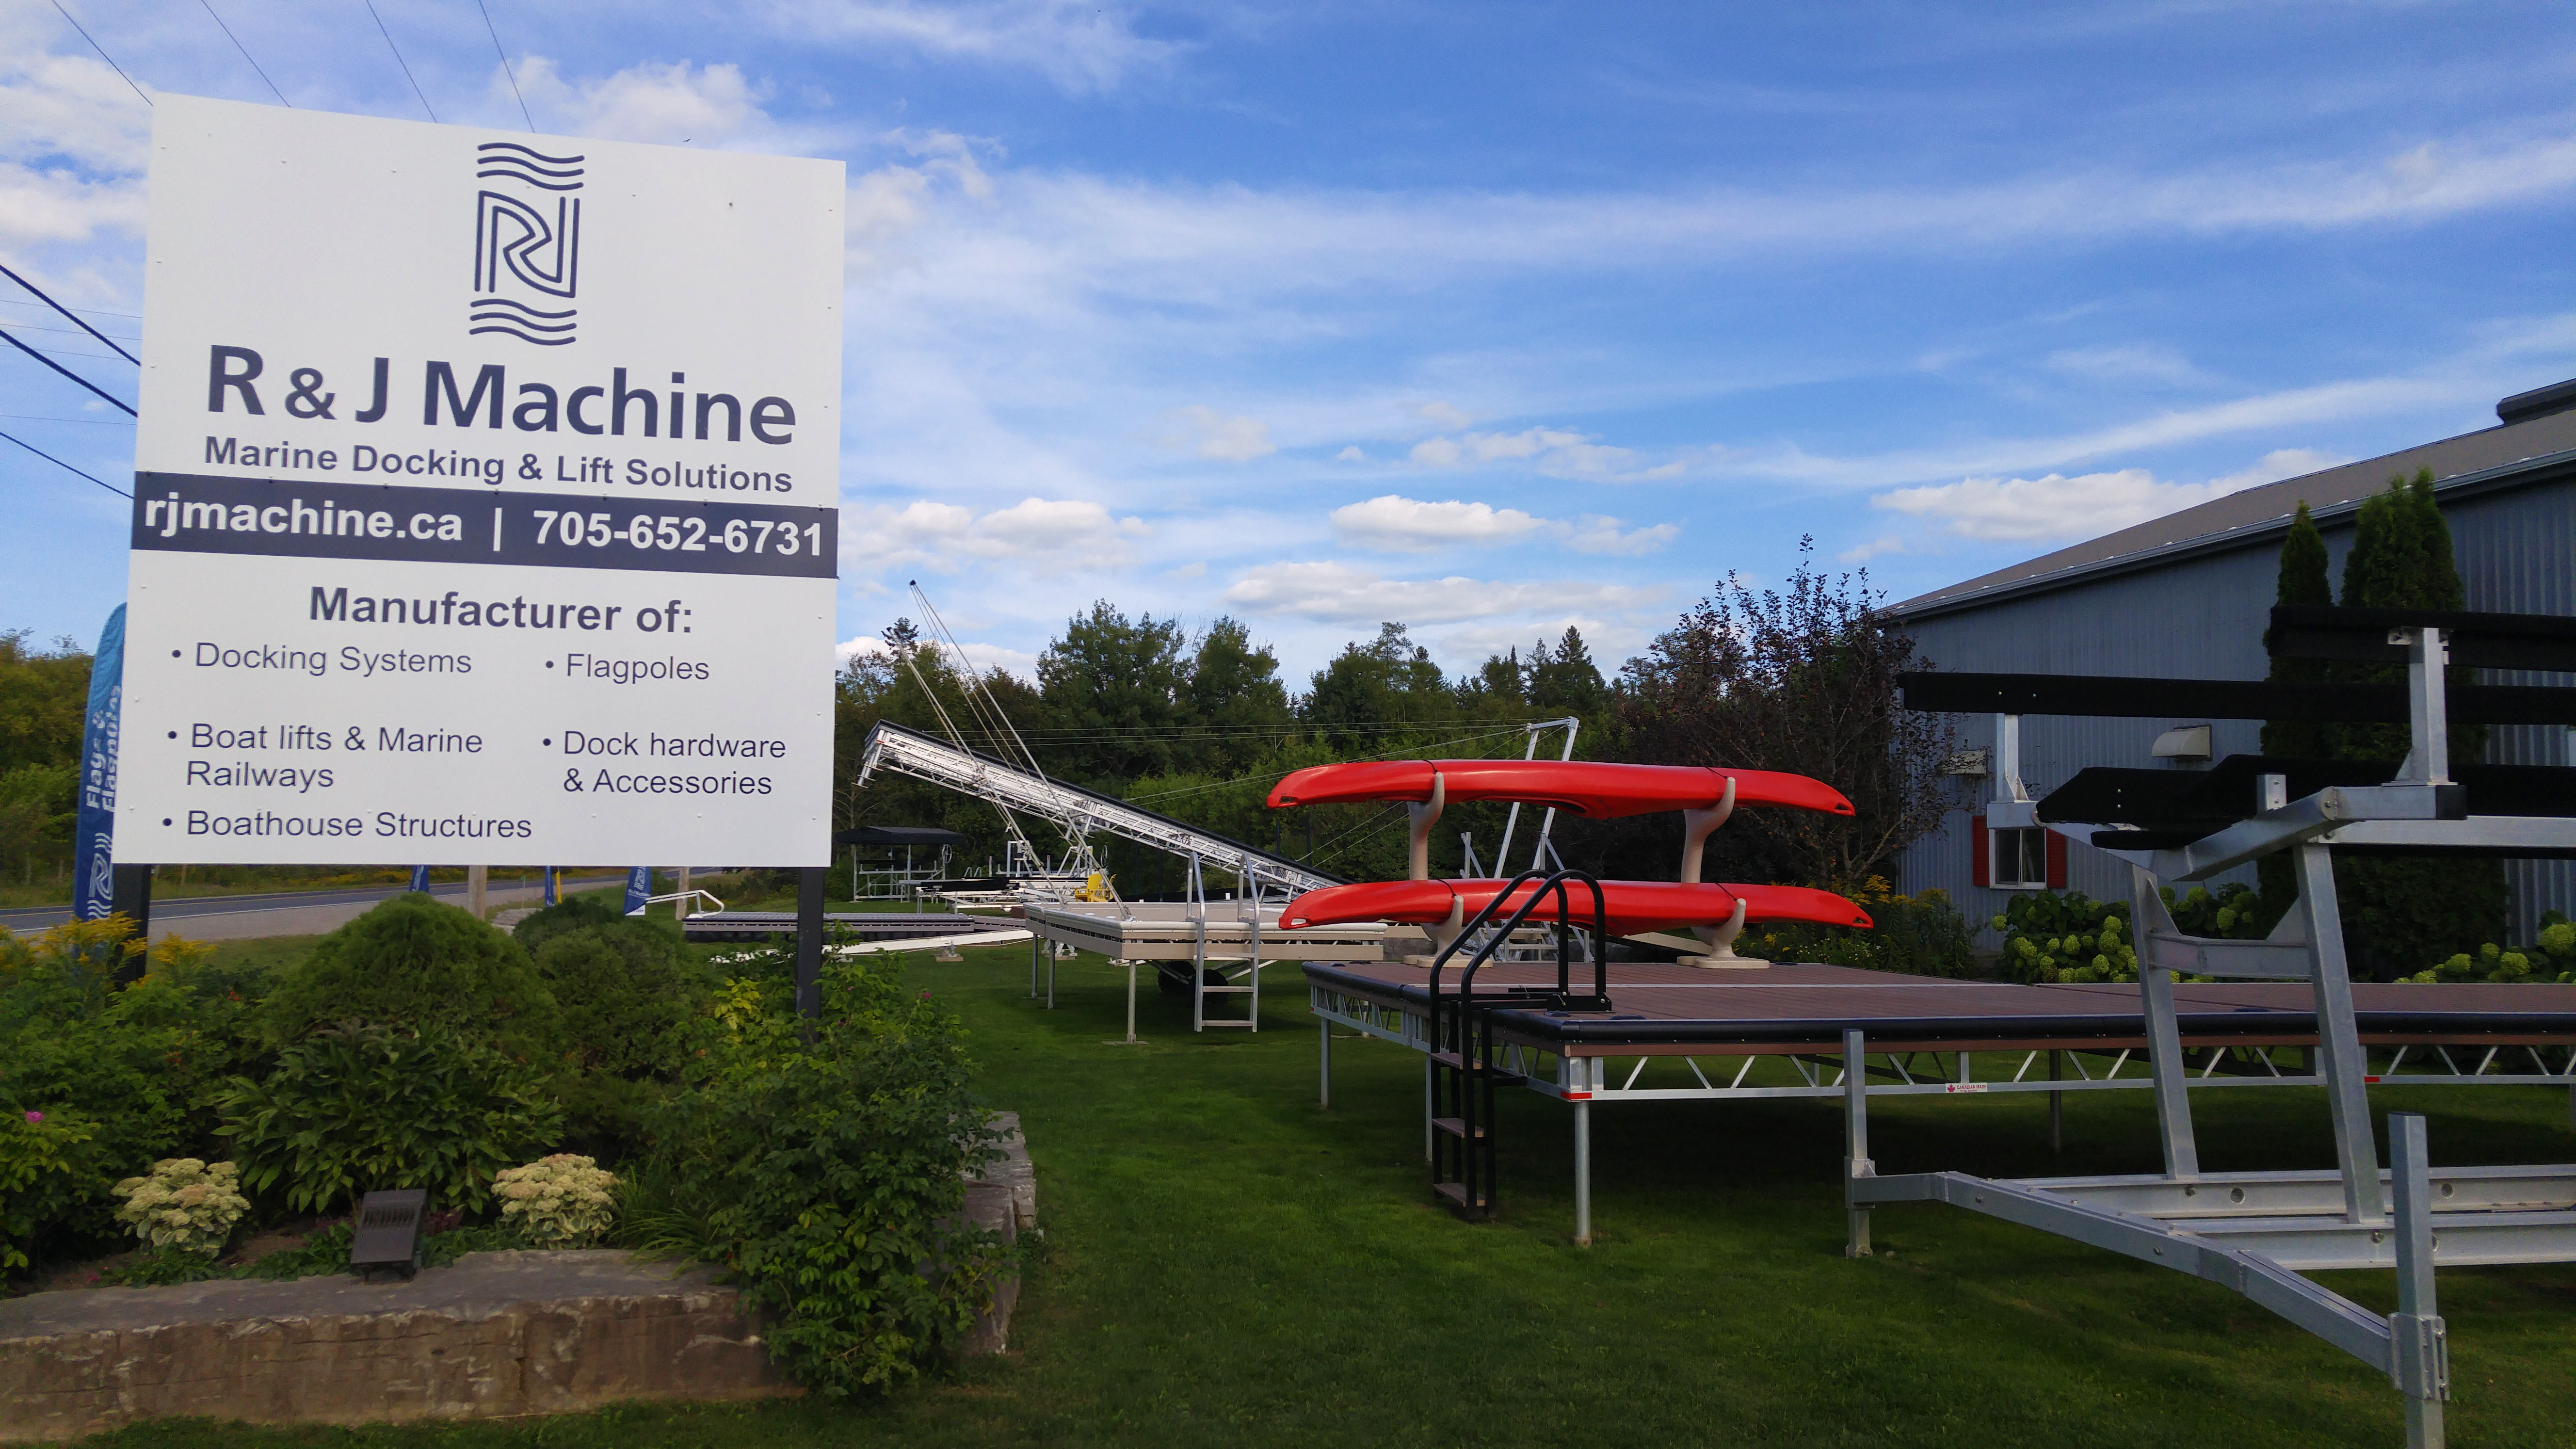 R&J Machine - Docks, Boatlifts, Railways, Boathouses Front Yard Display